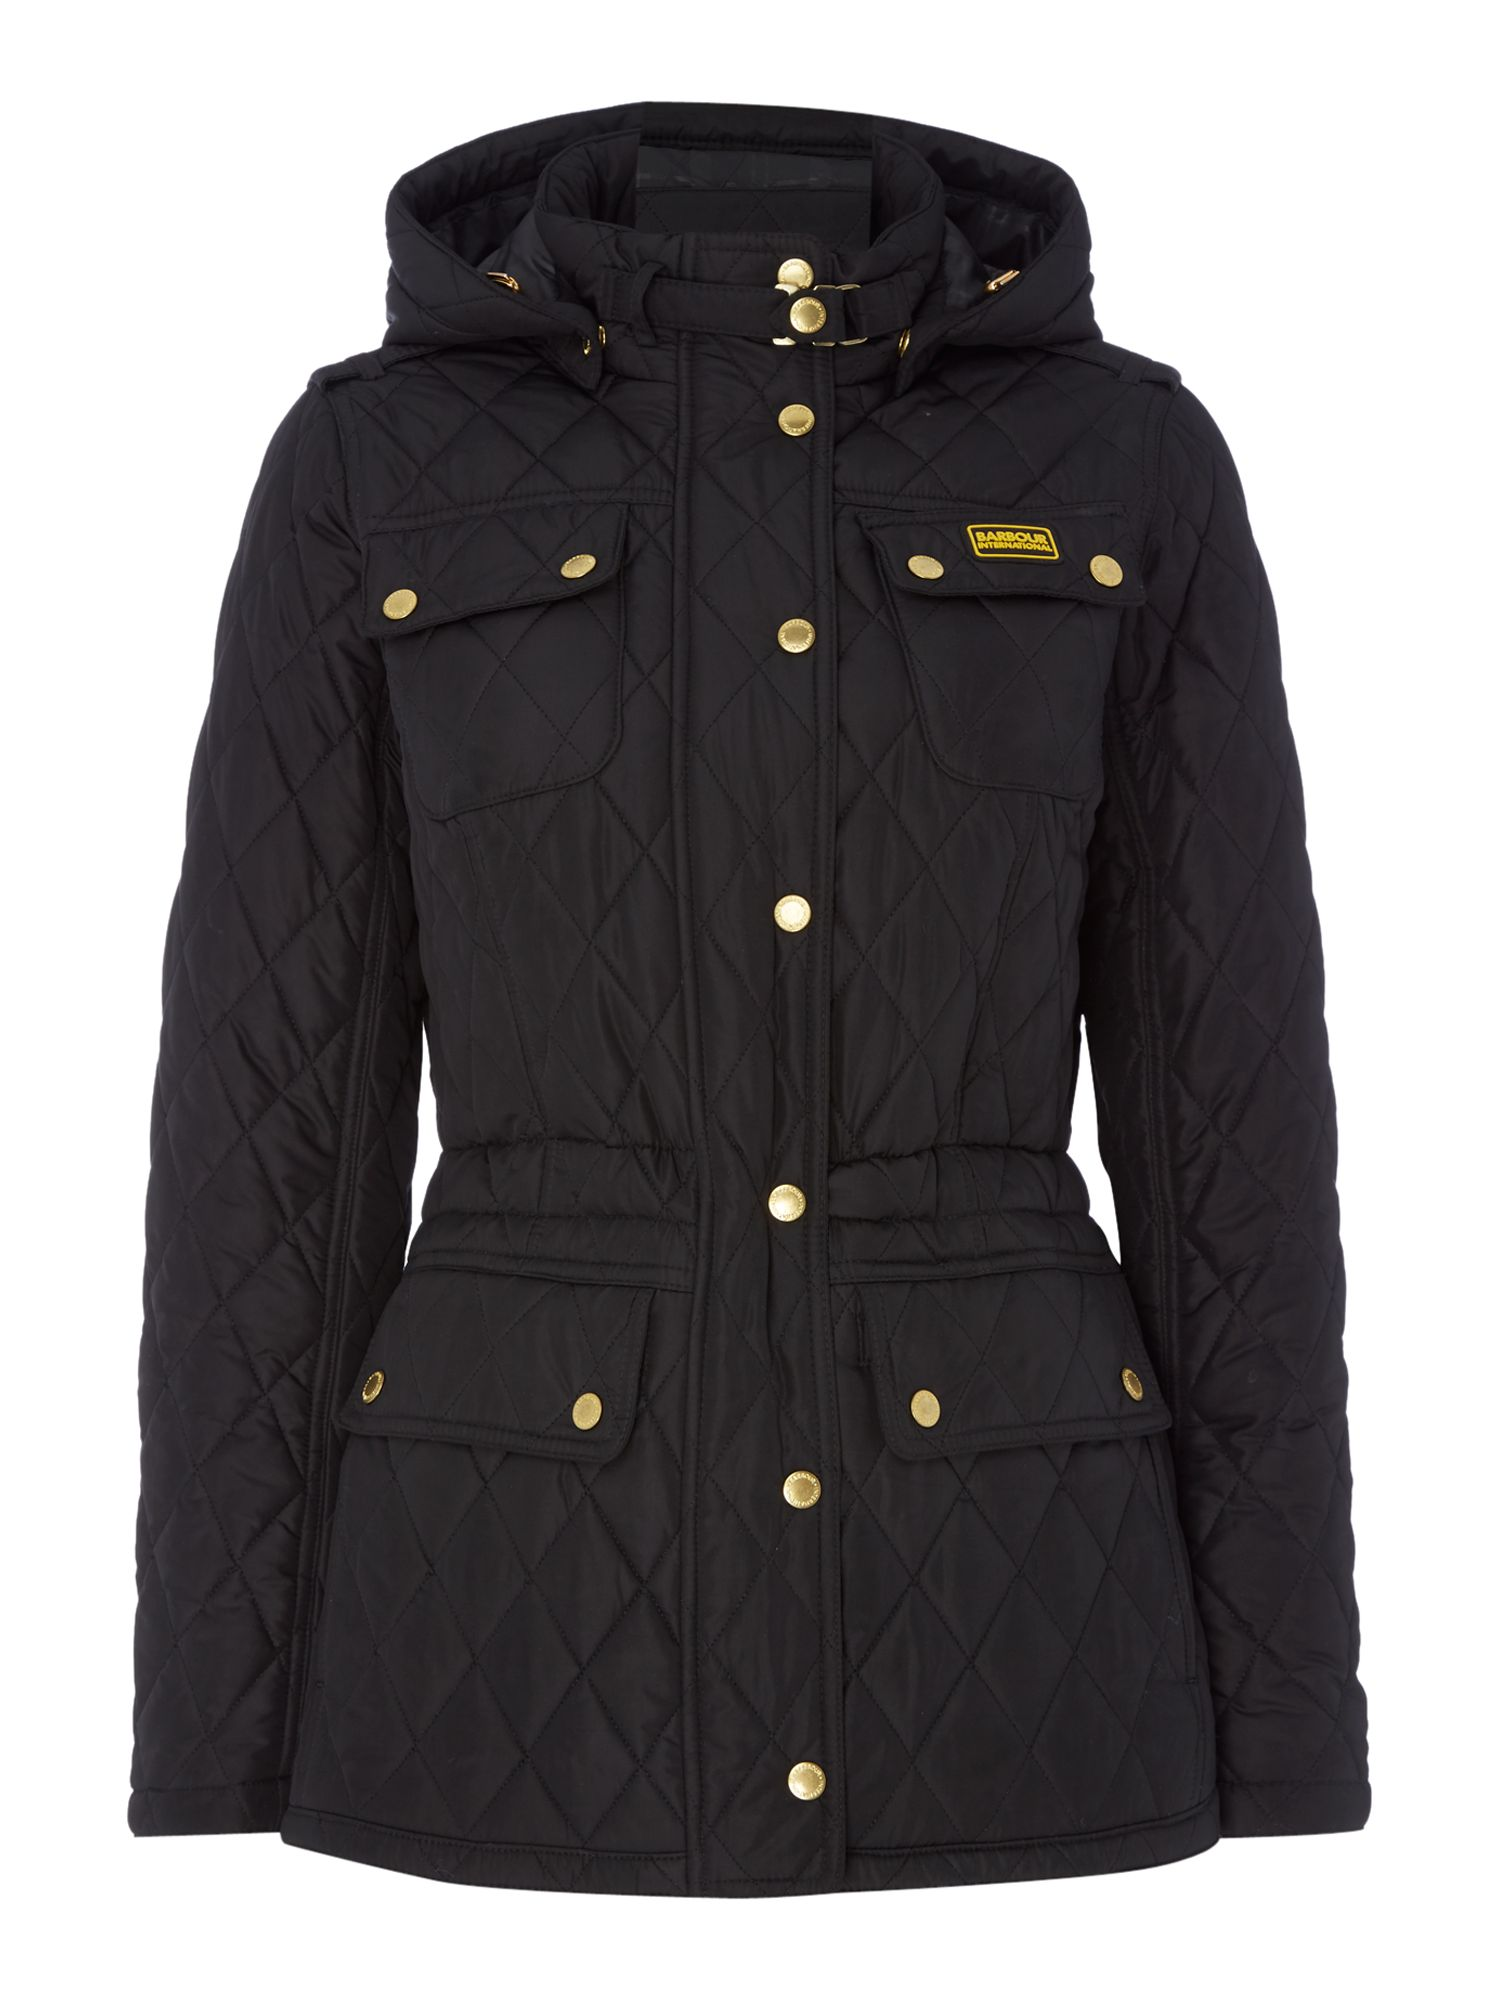 Barbour Barbour international absorber parka, Black